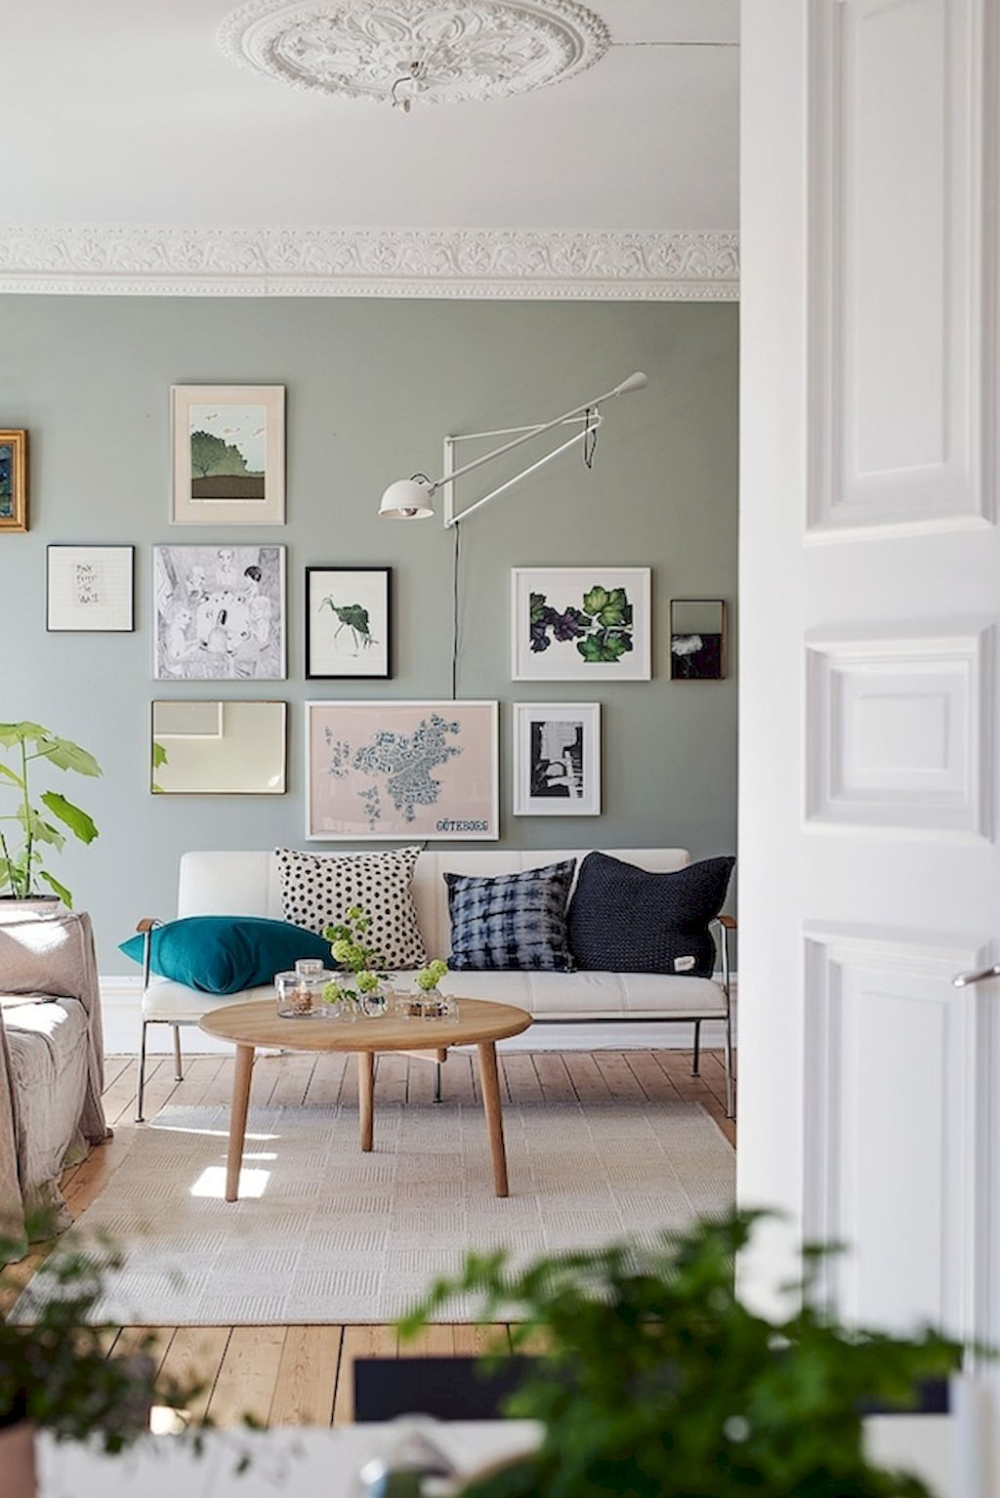 60 Awesome Gallery Wall Living Room Ideas In 2020 Sage Green Living Room Green Walls Living Room Living Room Colors